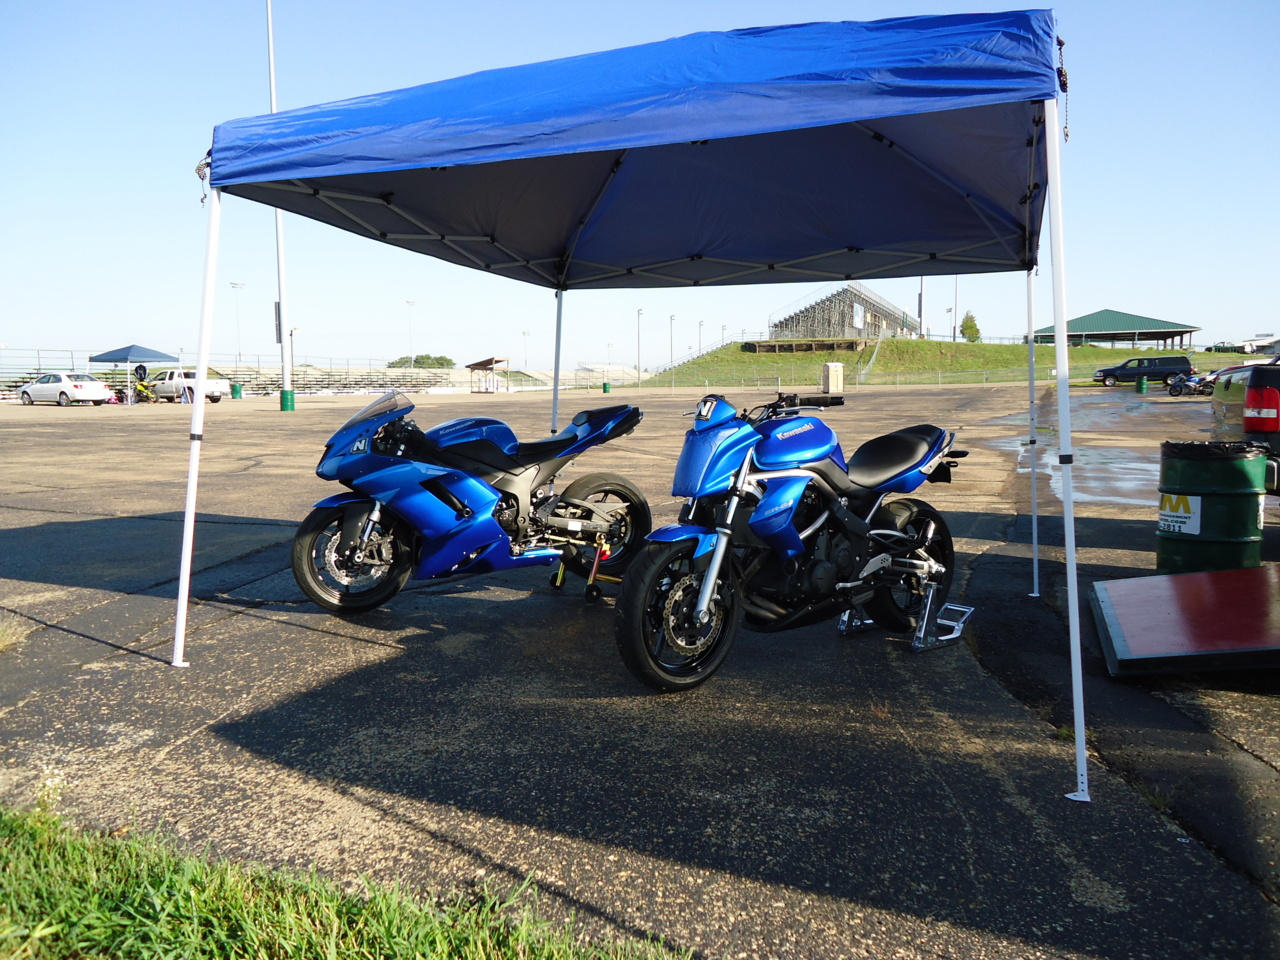 Me and Dozer's bikes at HPT 2011